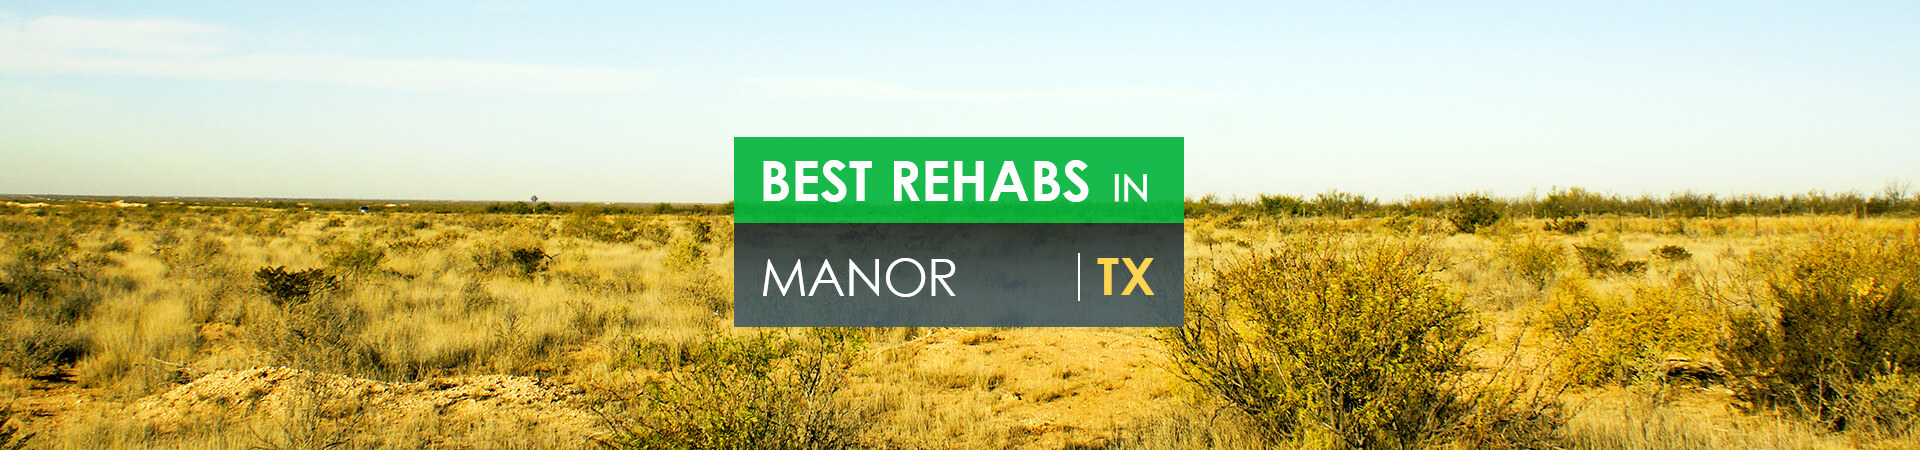 Best rehabs in Manor, TX